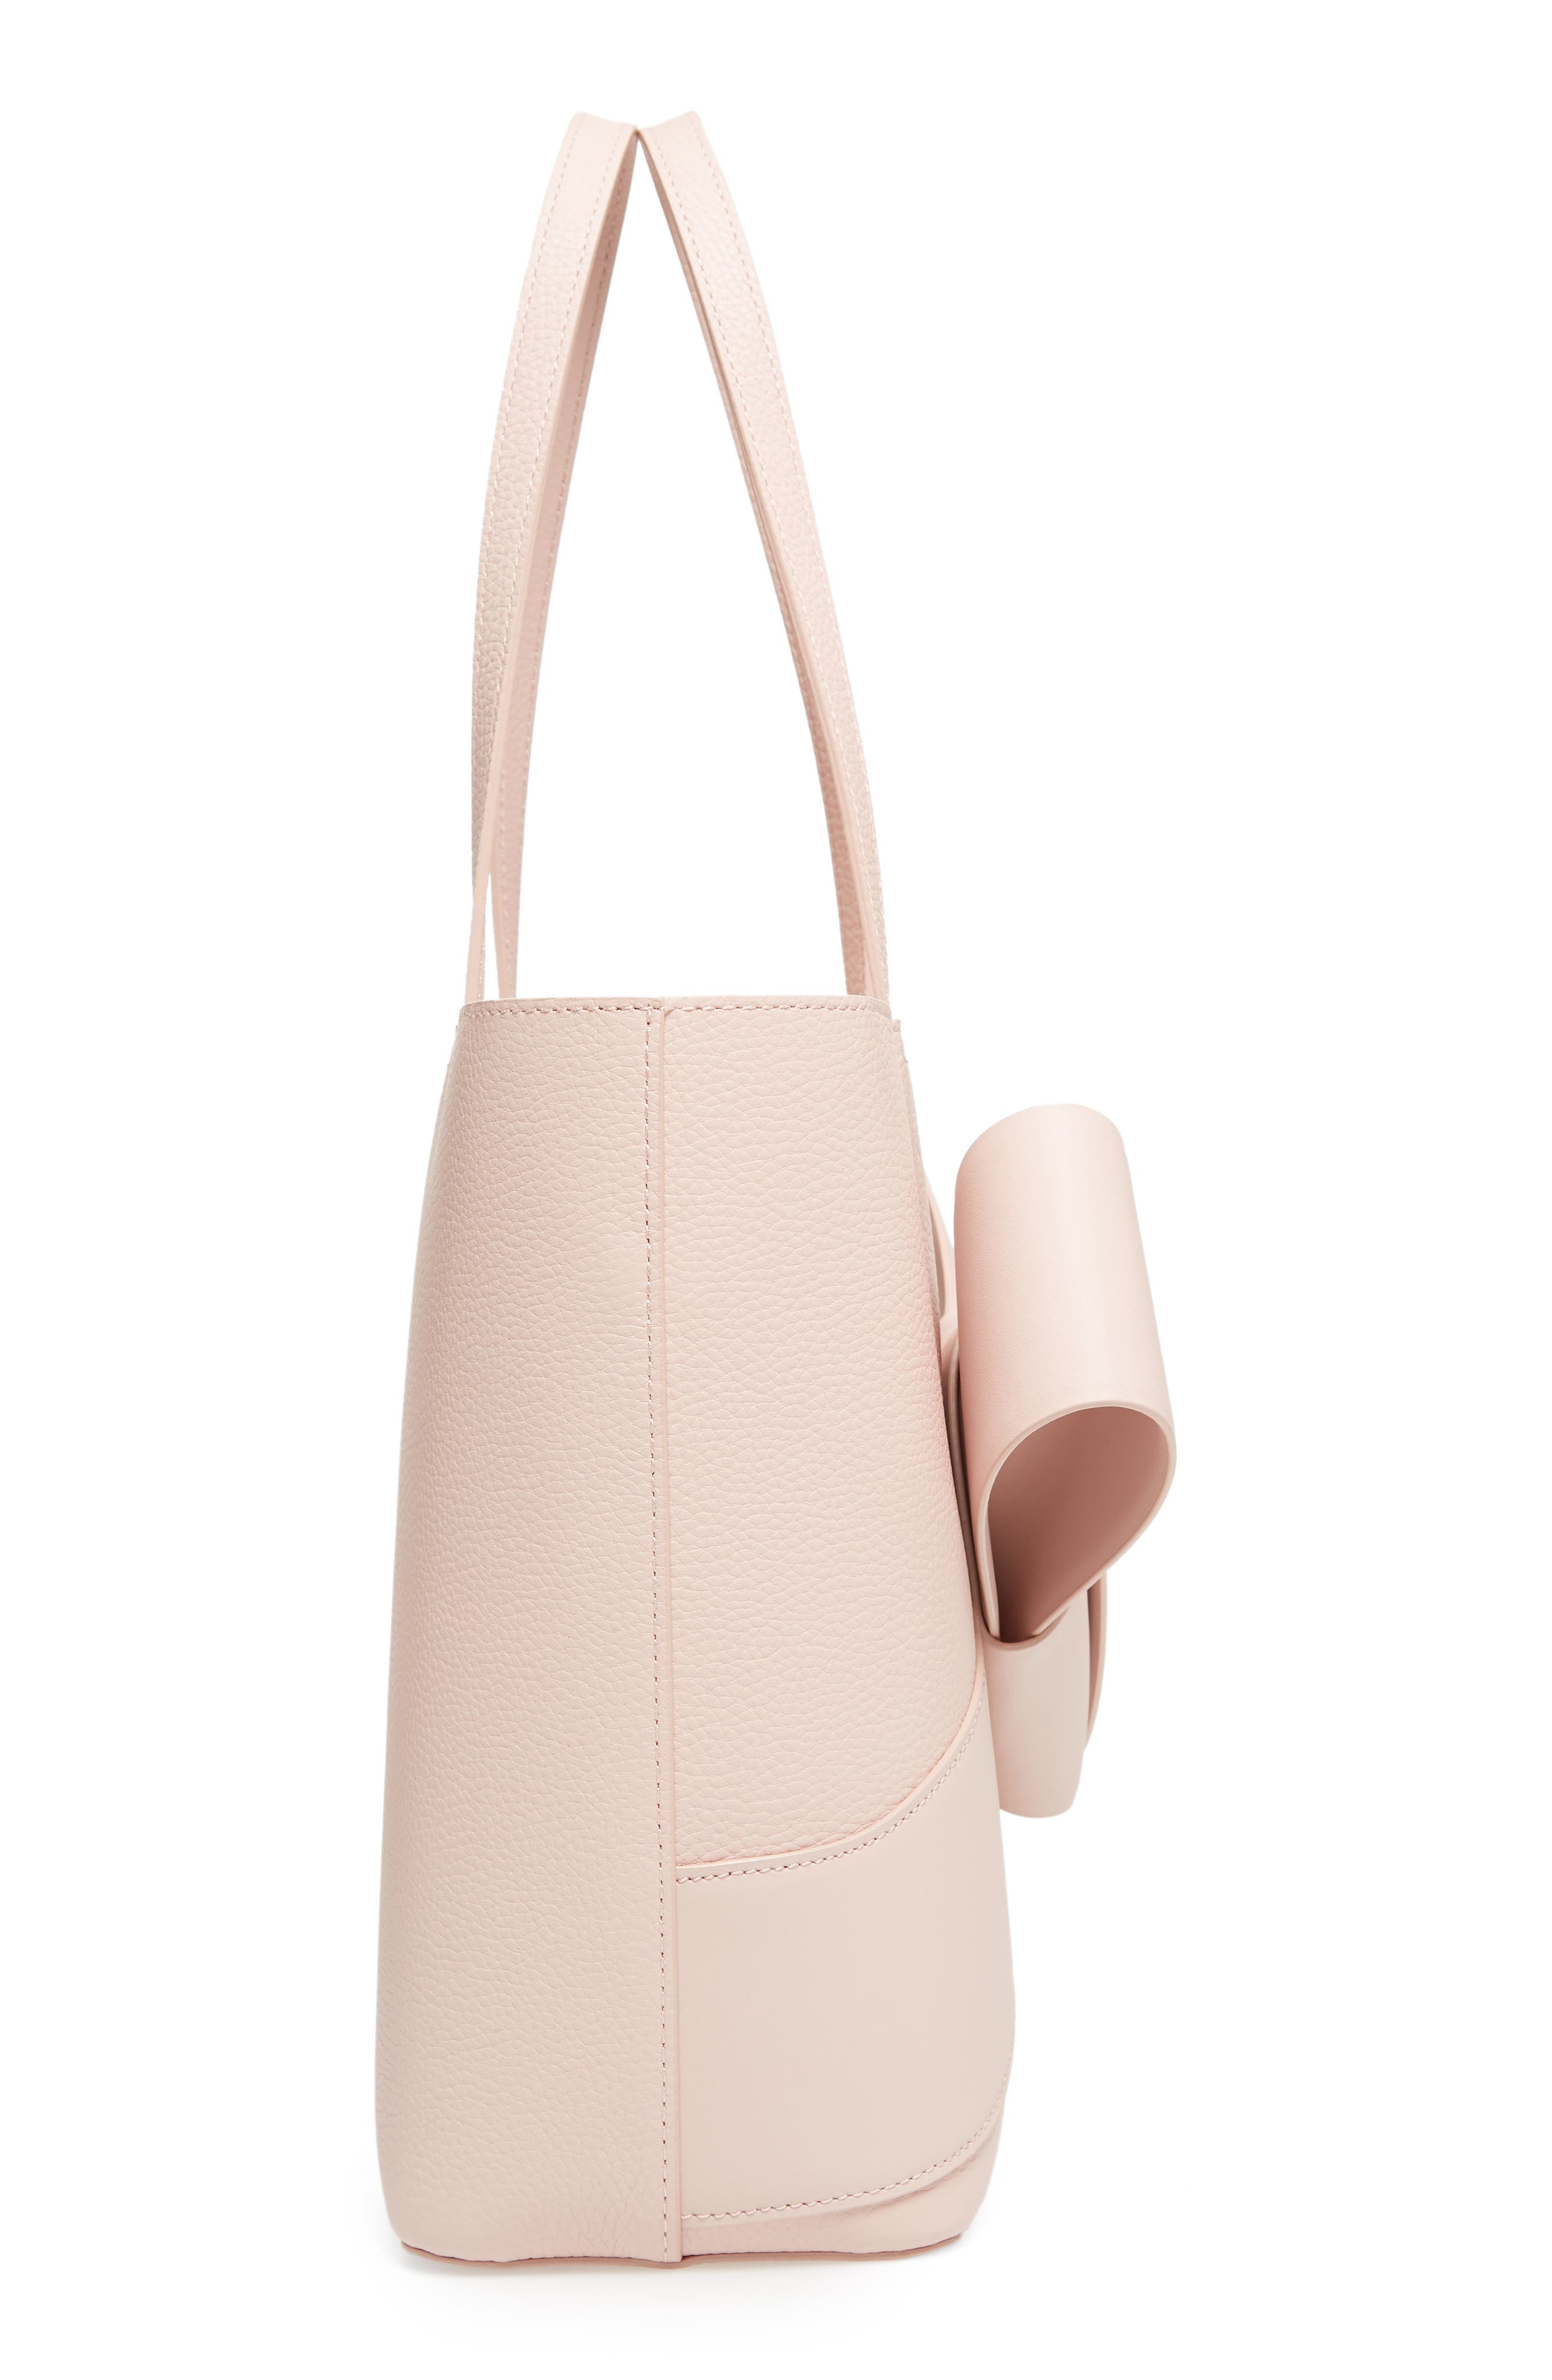 Giant Knot Leather Shopper,                             Alternate thumbnail 5, color,                             Nude Pink